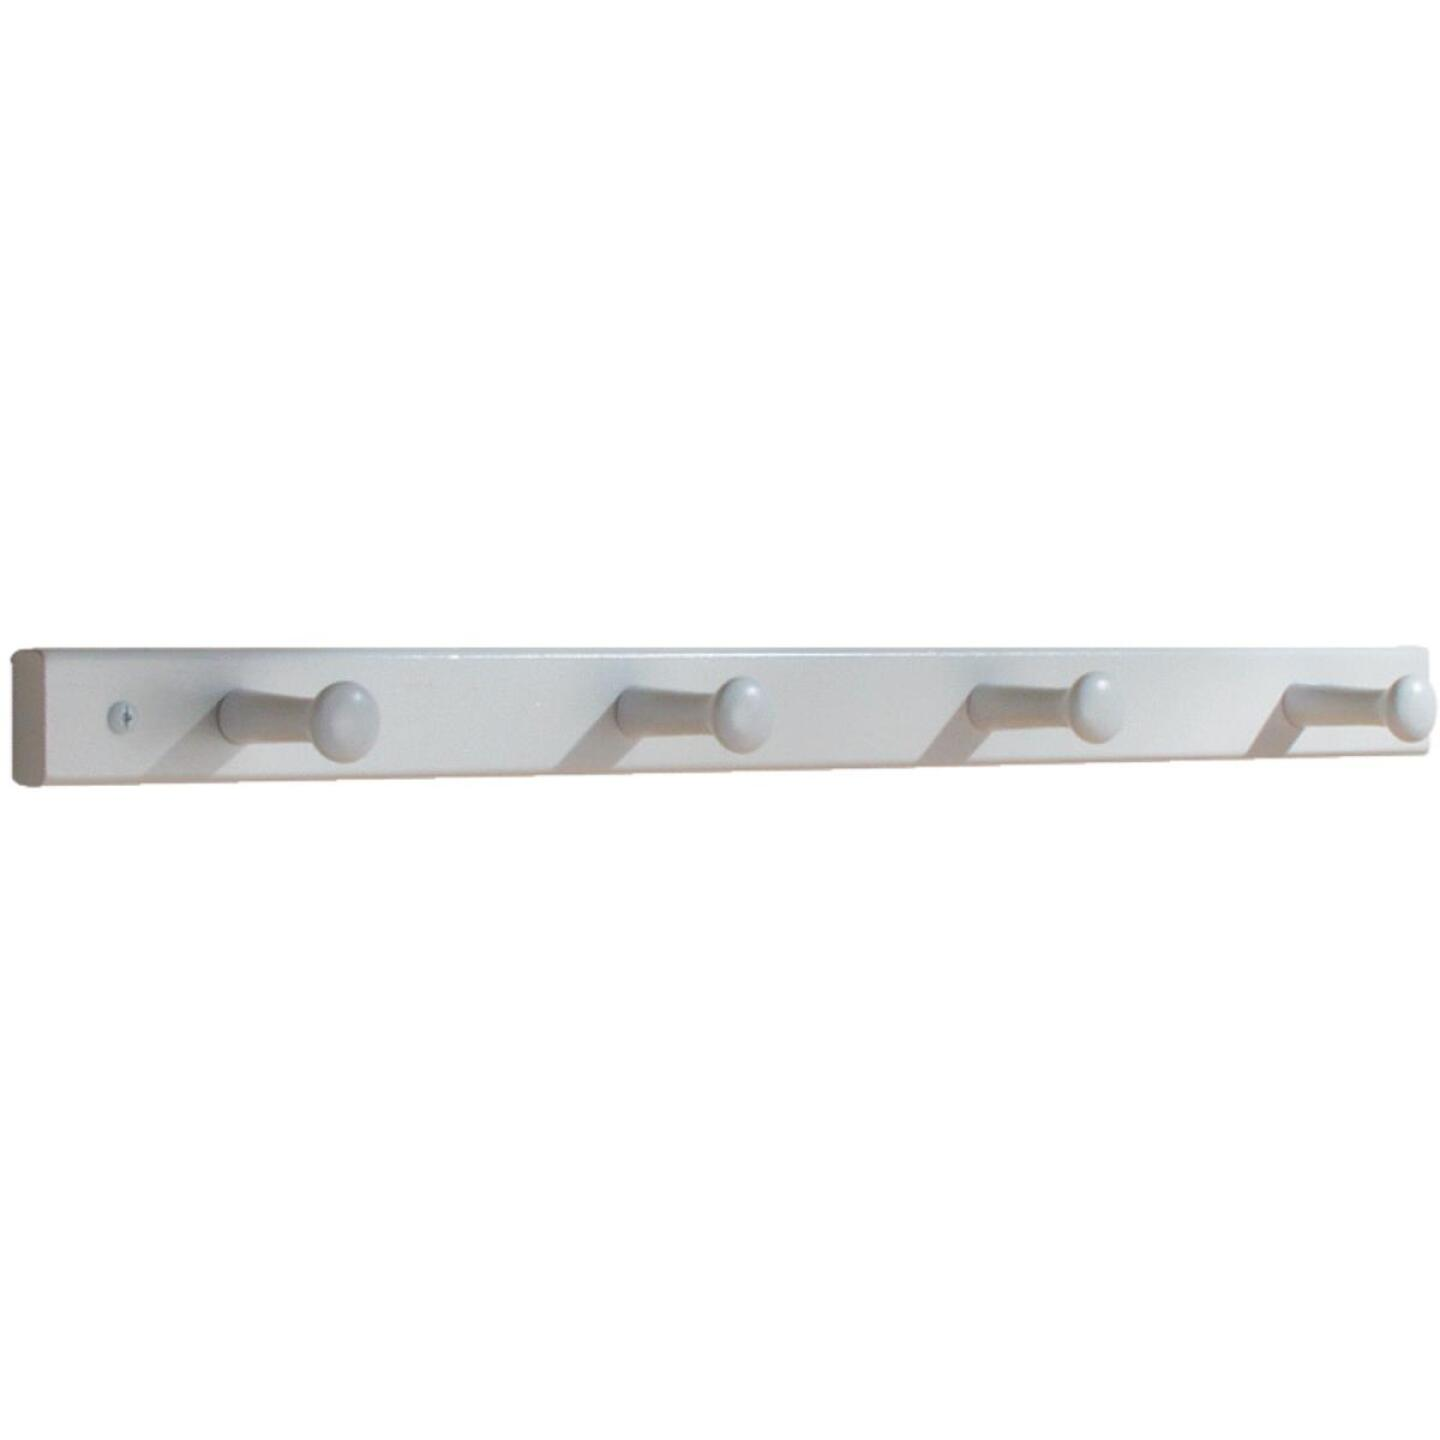 Interdesign White Wood 4-Peg Rack Image 1